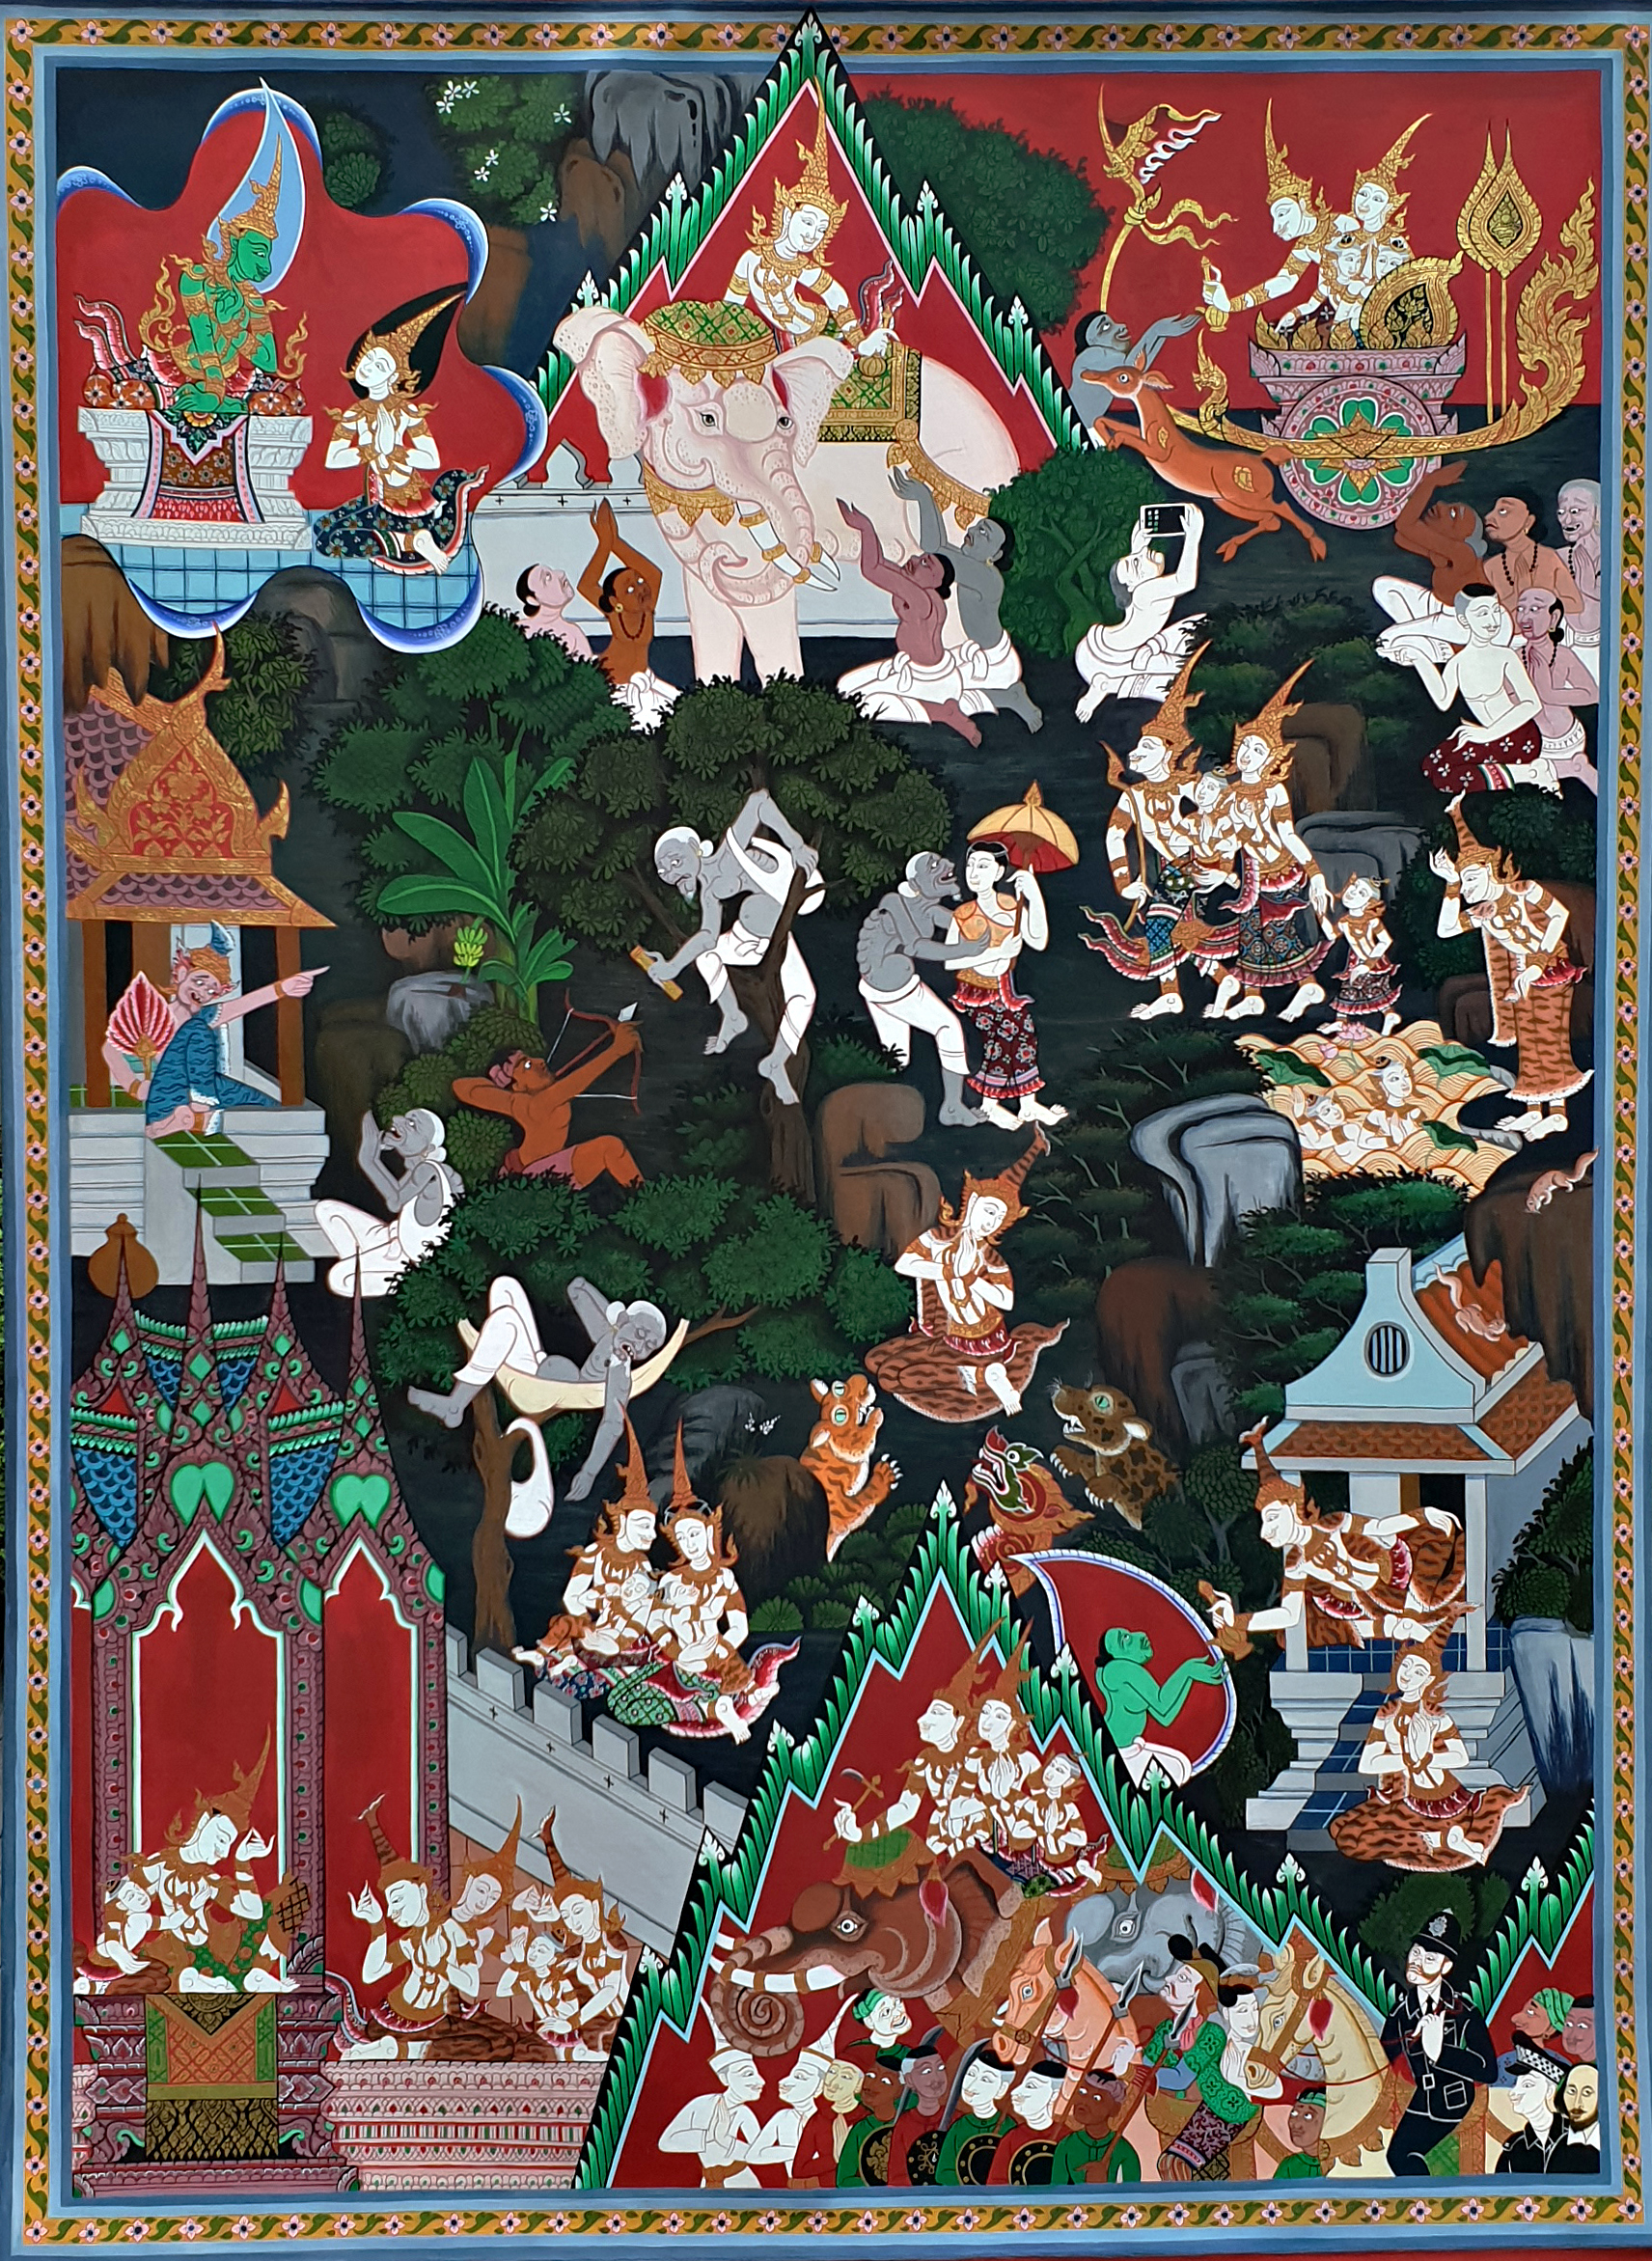 A Thai Buddhist wall paintings featuring a woodland scene